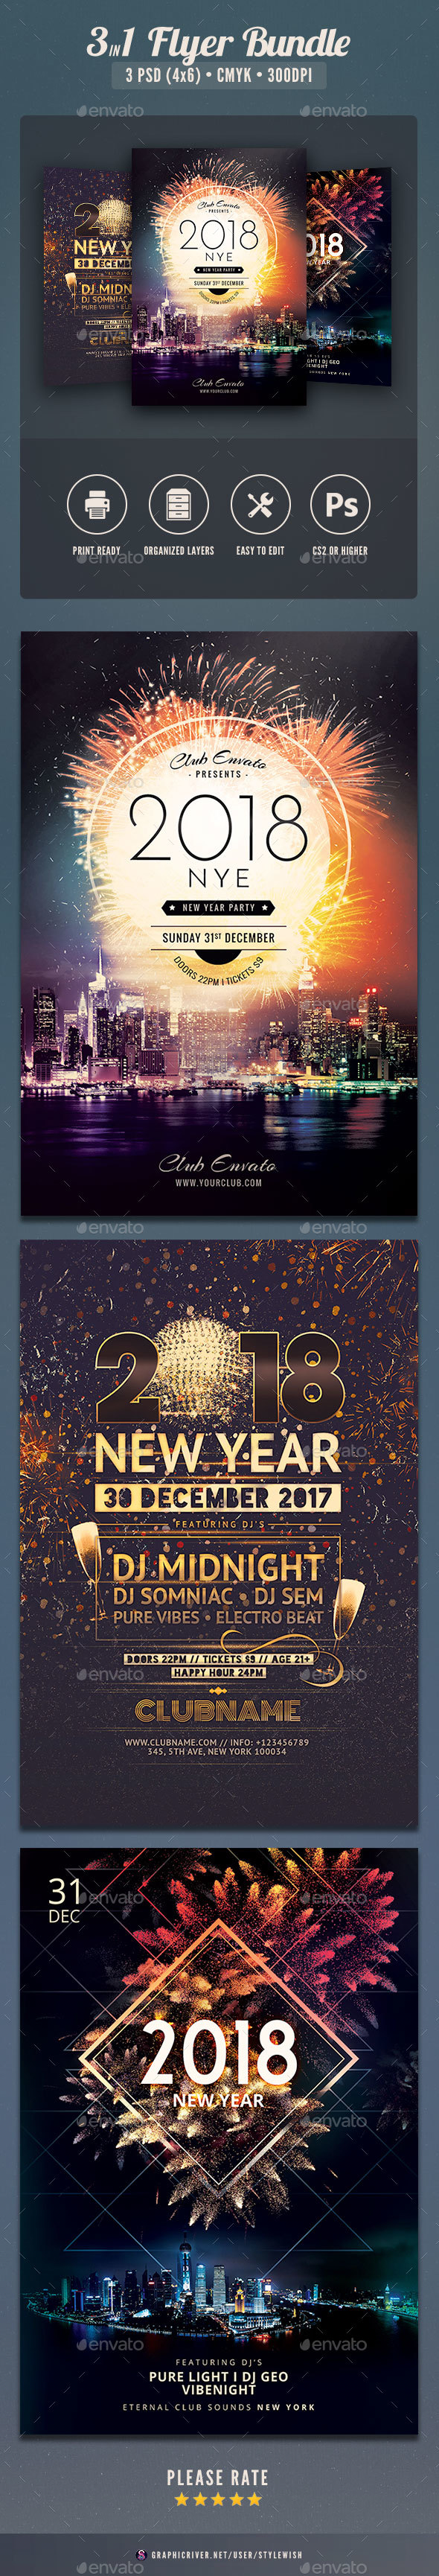 New Year Flyer Bundle Vol.06 - Clubs & Parties Events